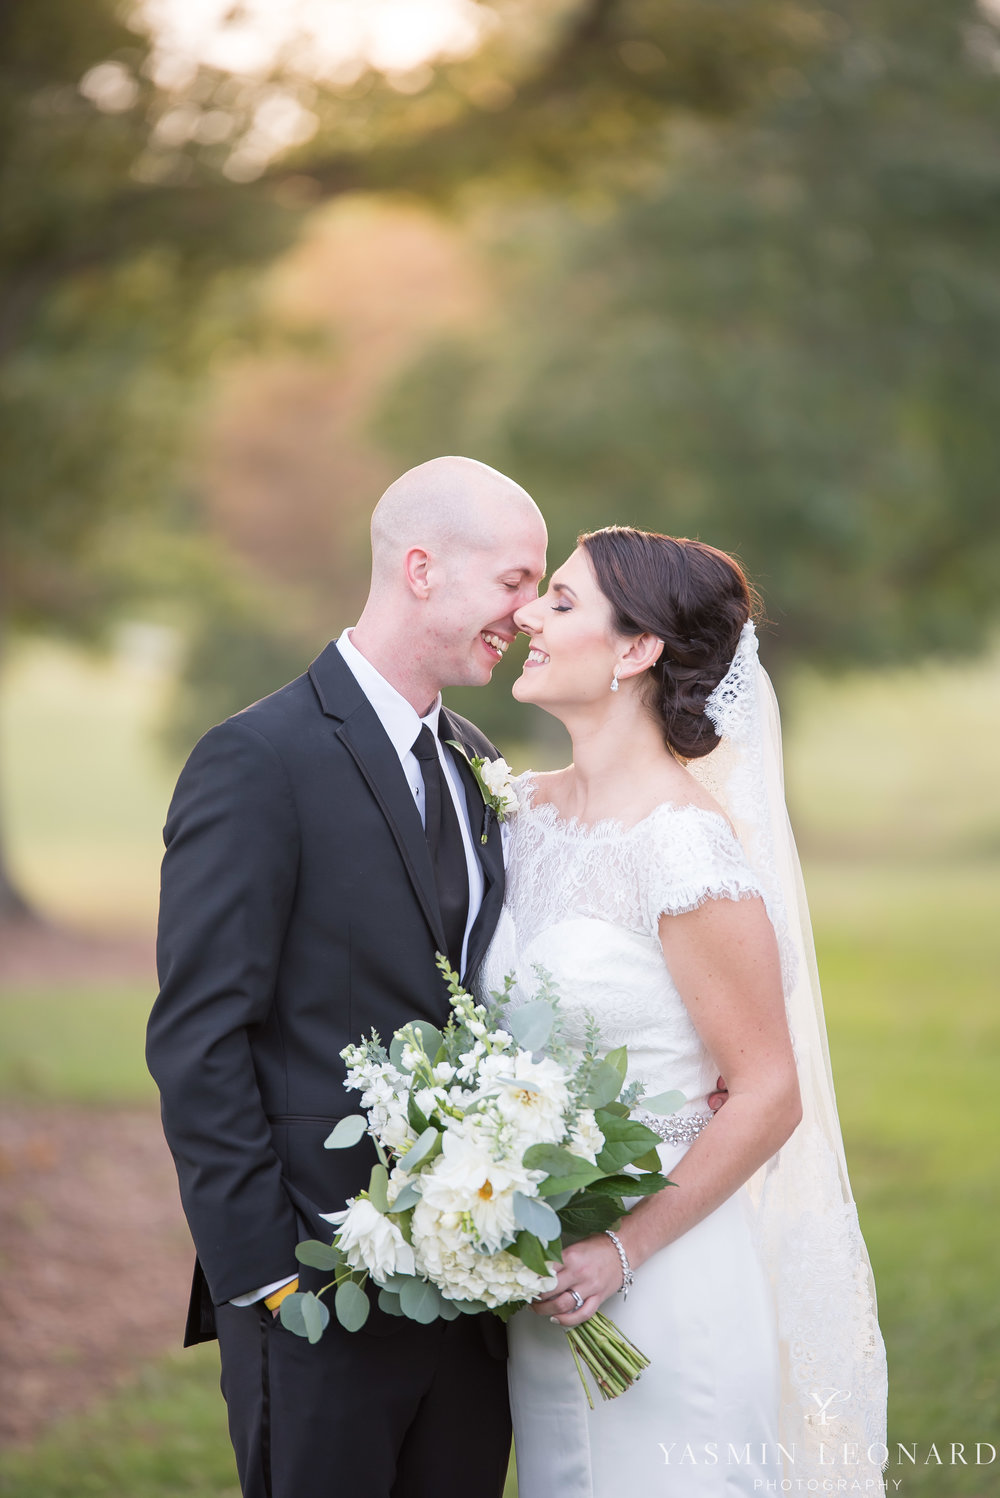 Forsyth Country Club - Winston Salem, NC - NC Wedding Photographer - Winston Salem Weddings - Winston Salem Wedding Venues-41.jpg